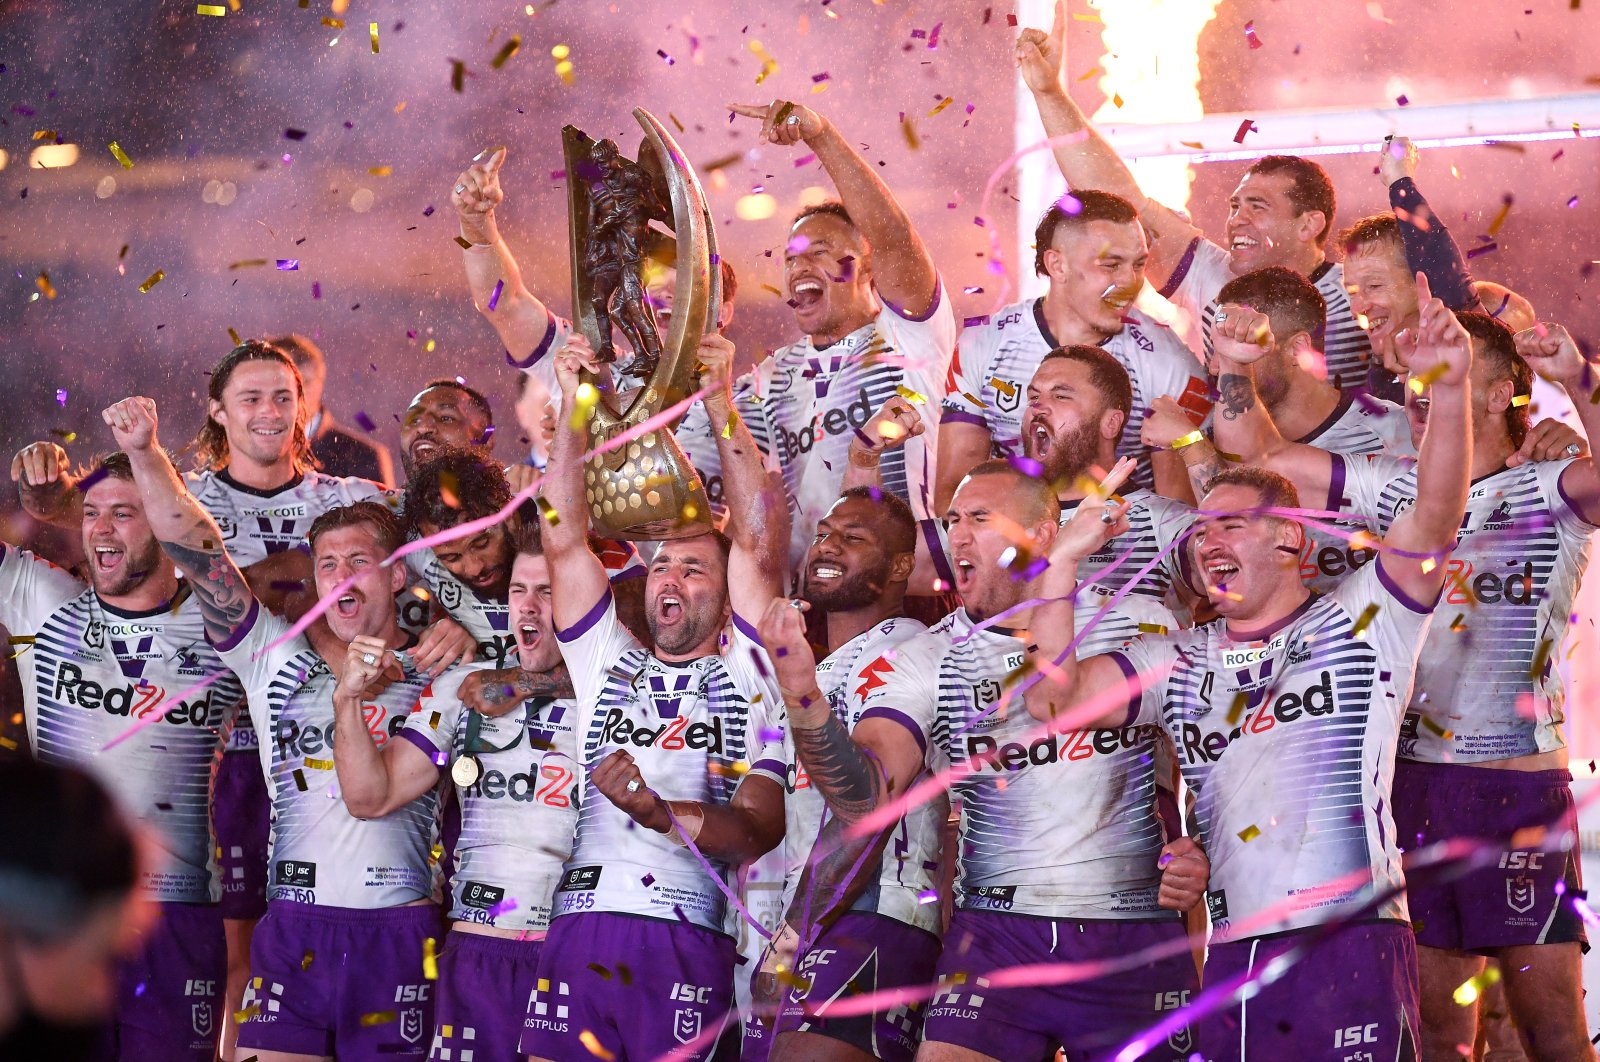 Melbourne Storm players celebrate with the trophy, in Sydney, Australia, Oct. 25, 2020. (REUTERS Photo)